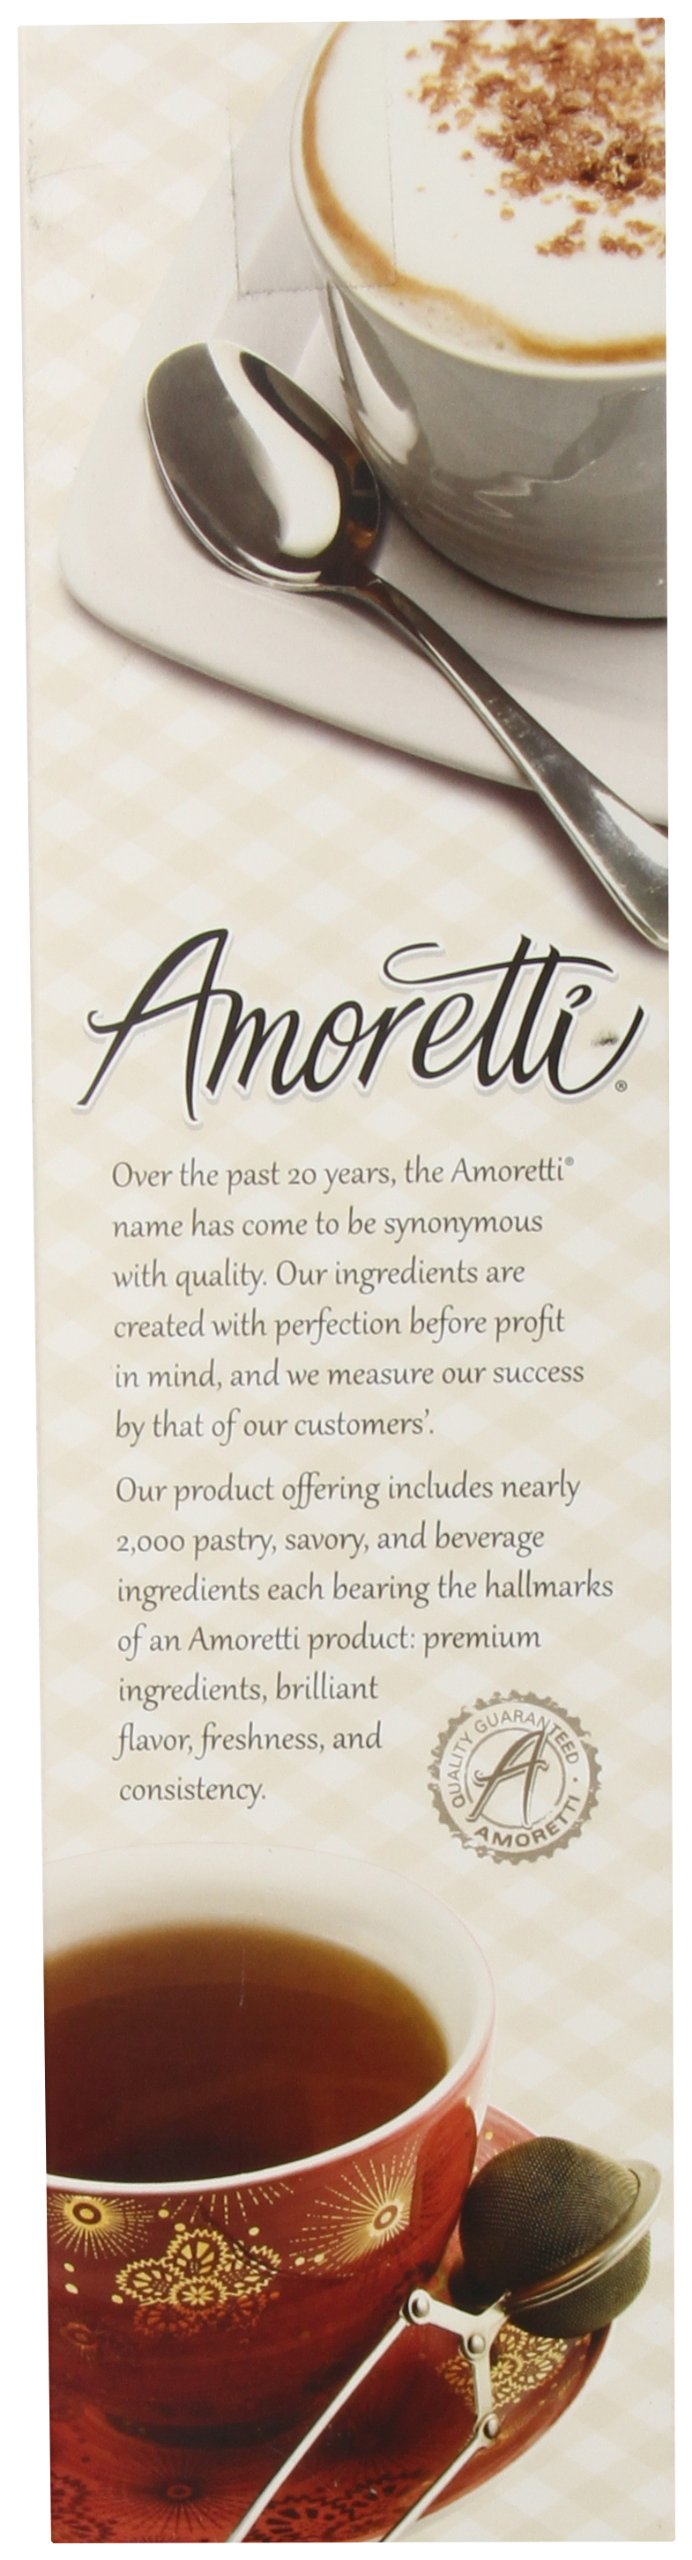 Amoretti Premium Crema Di Salted Caramel Syrup, 25.4 fluid Ounce by Amoretti (Image #5)